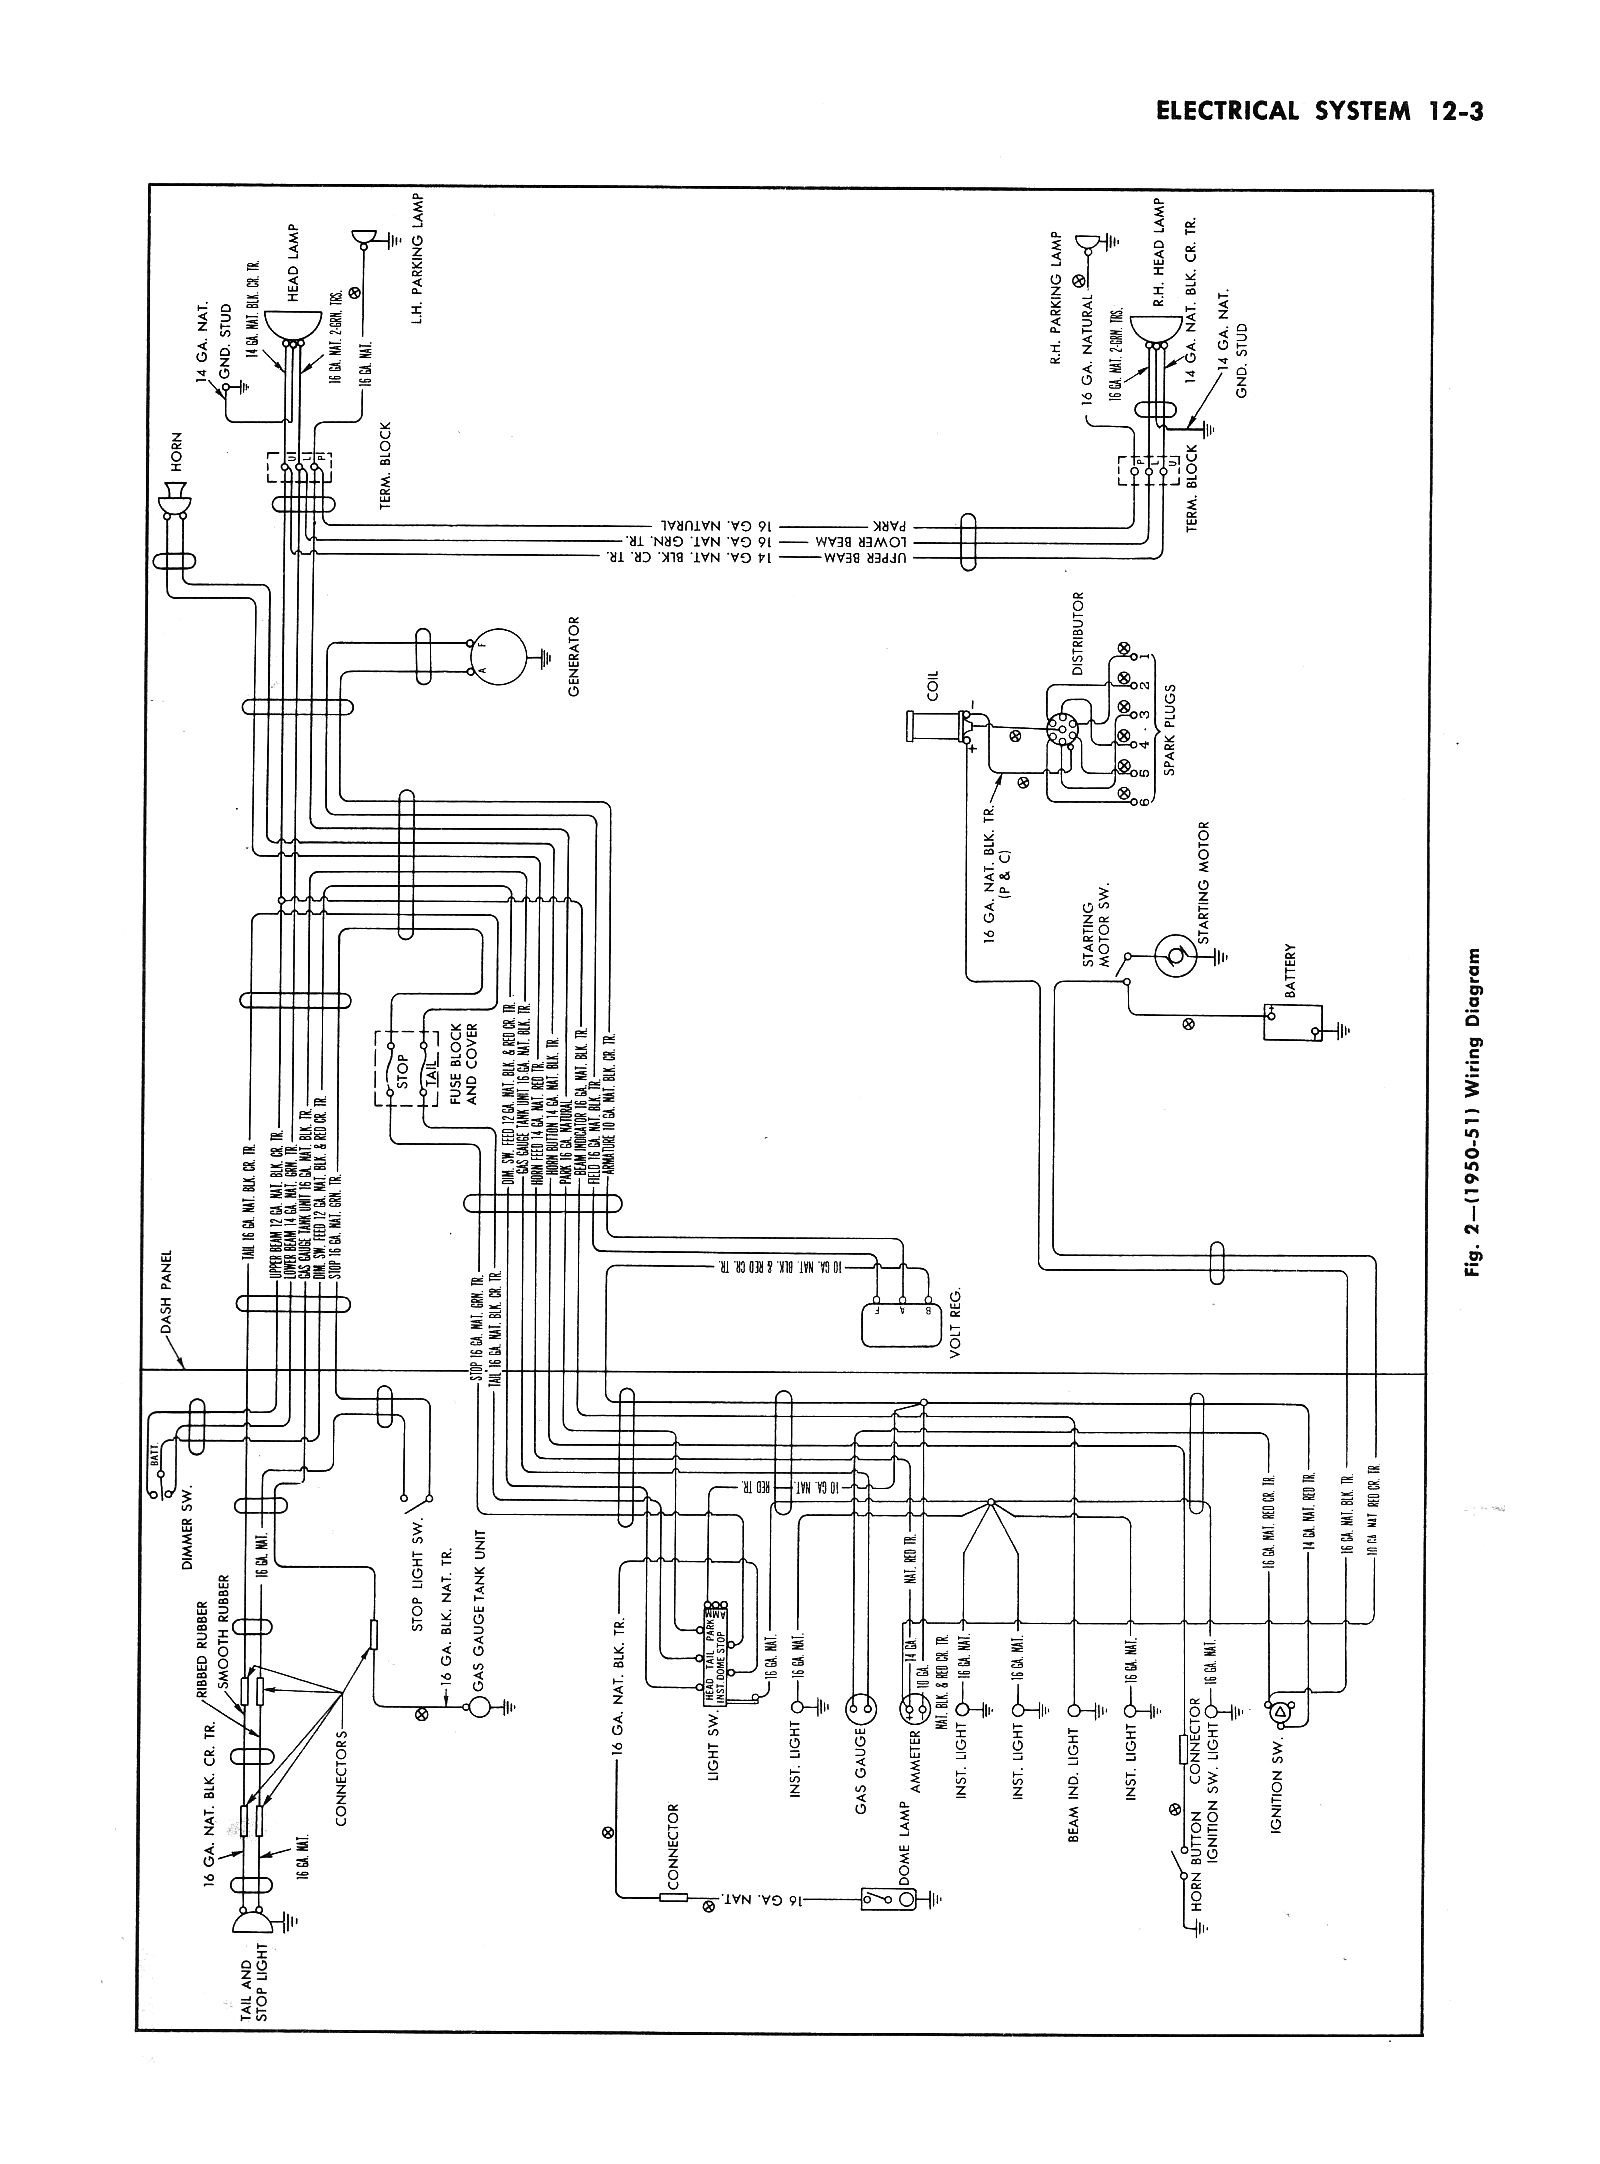 Wiring Diagram As Well Car Headlight Wiring Diagram Further Wiring